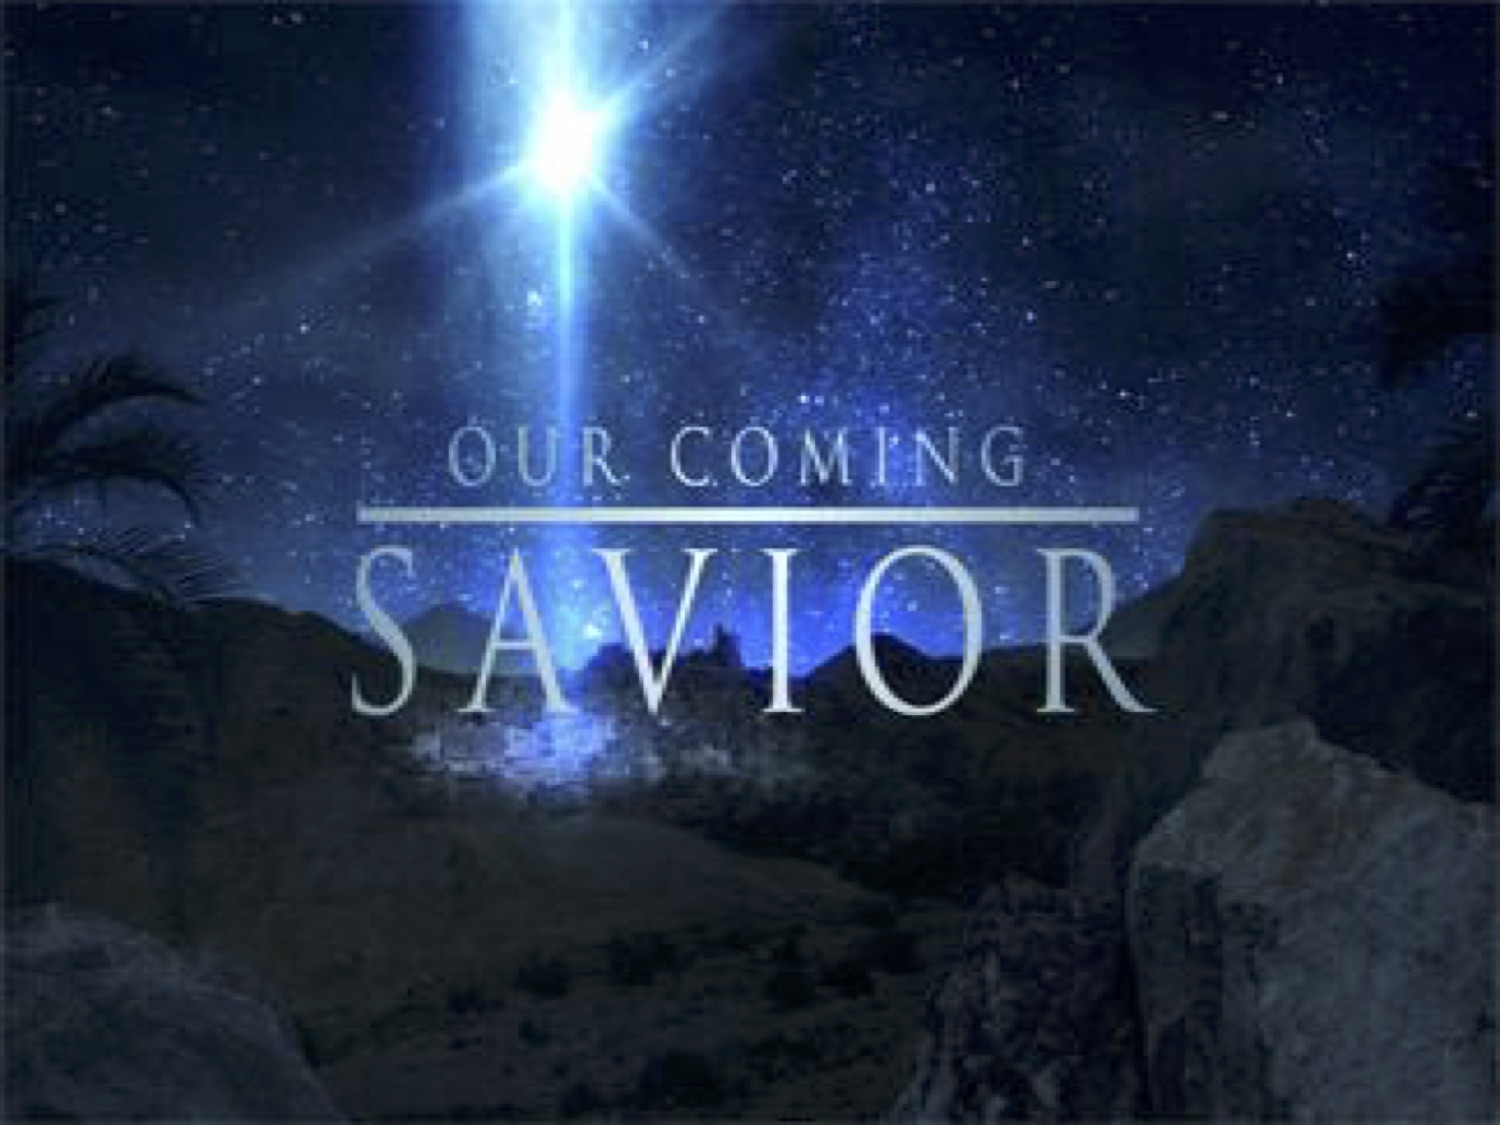 Our coming savior   Dec 2016  - A Christmas series looking forward and looking backward to Jesus'coming